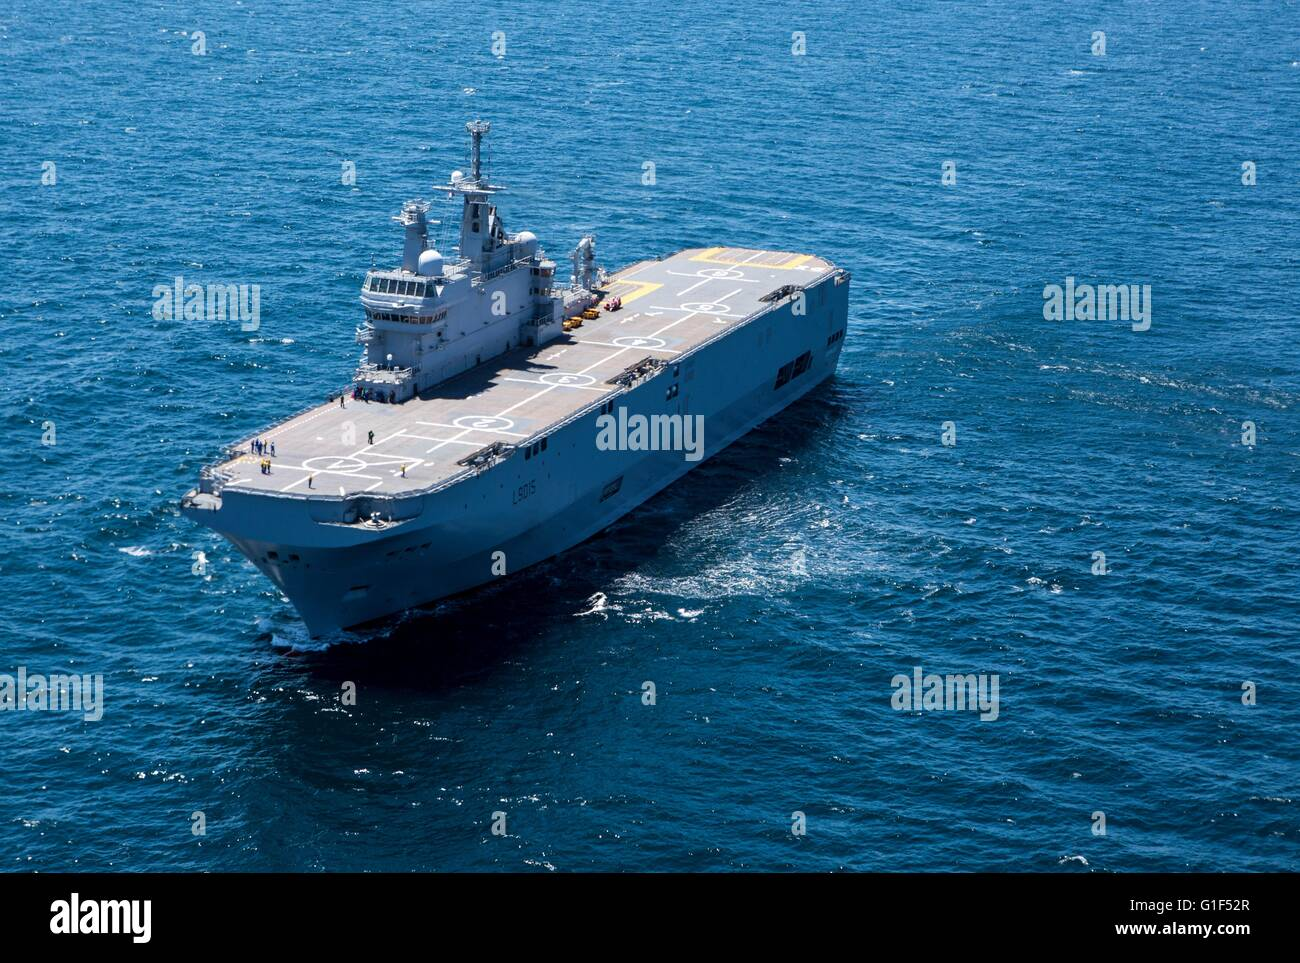 the french navy mistral class amphibious assault ship bpc dixmude underway awaiting the arrival of an